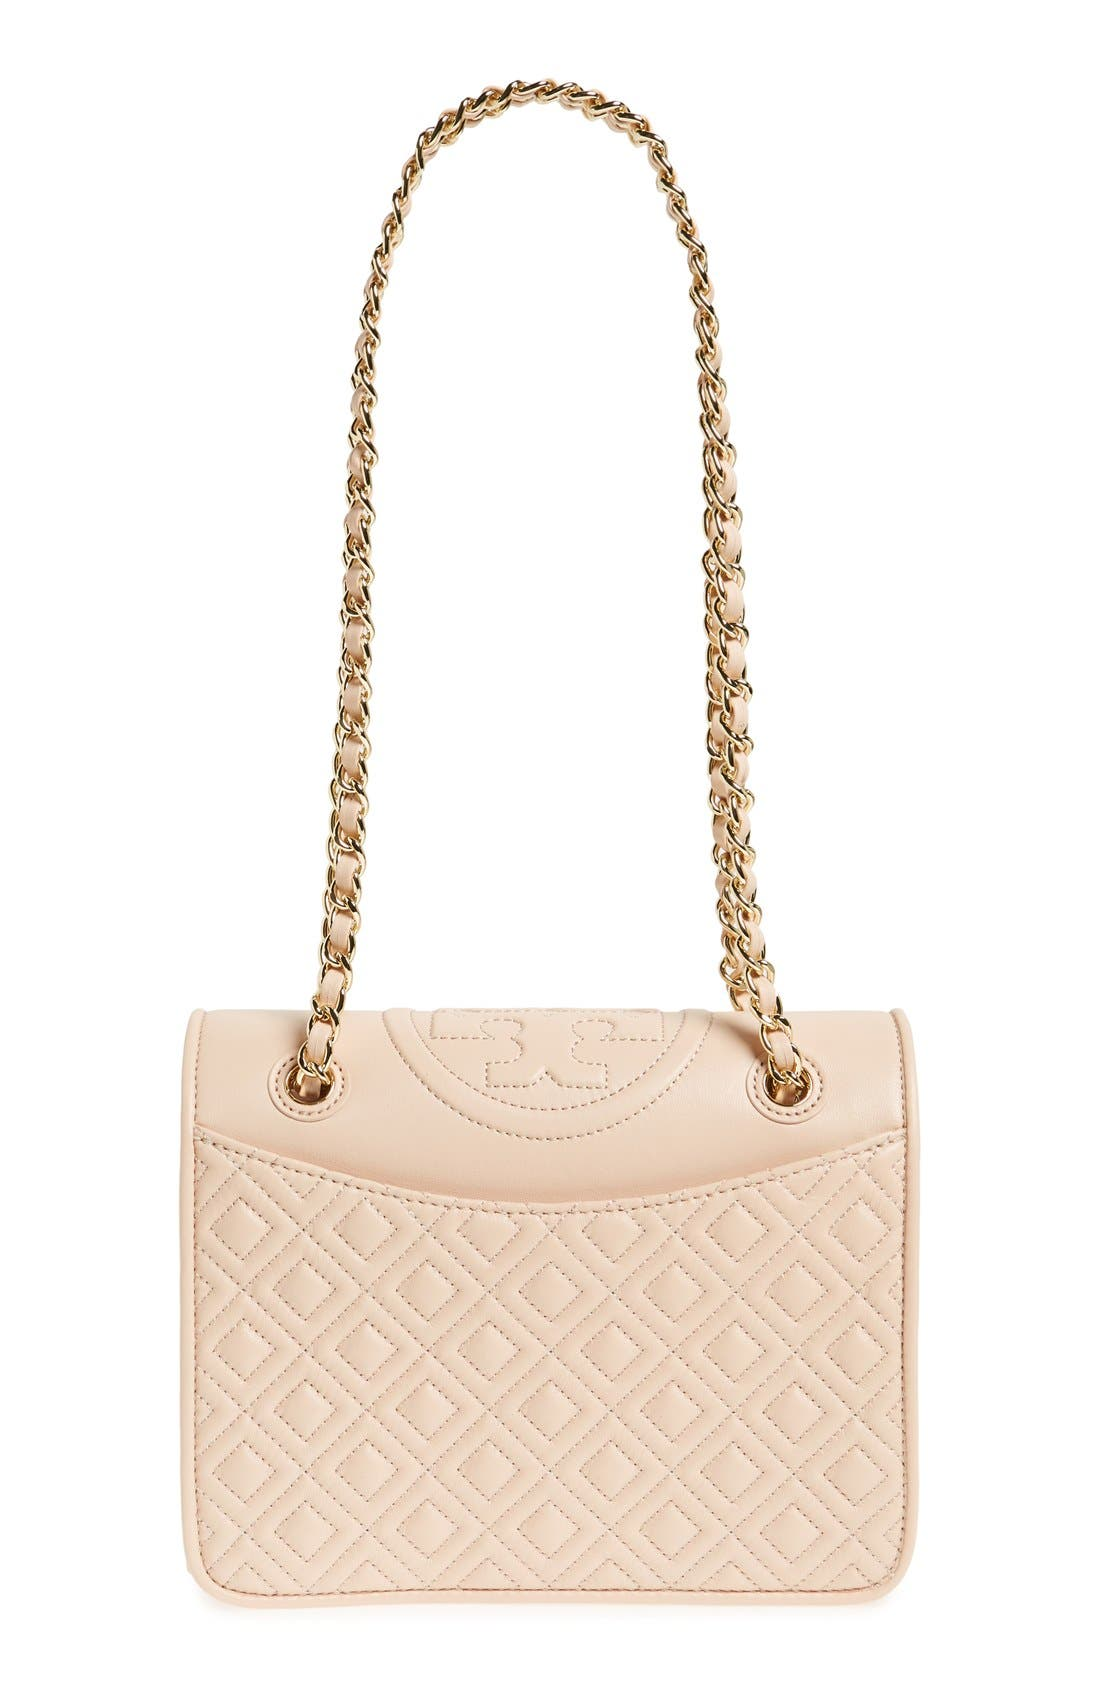 Main Image - Tory Burch 'Medium Fleming' Leather Shoulder Bag